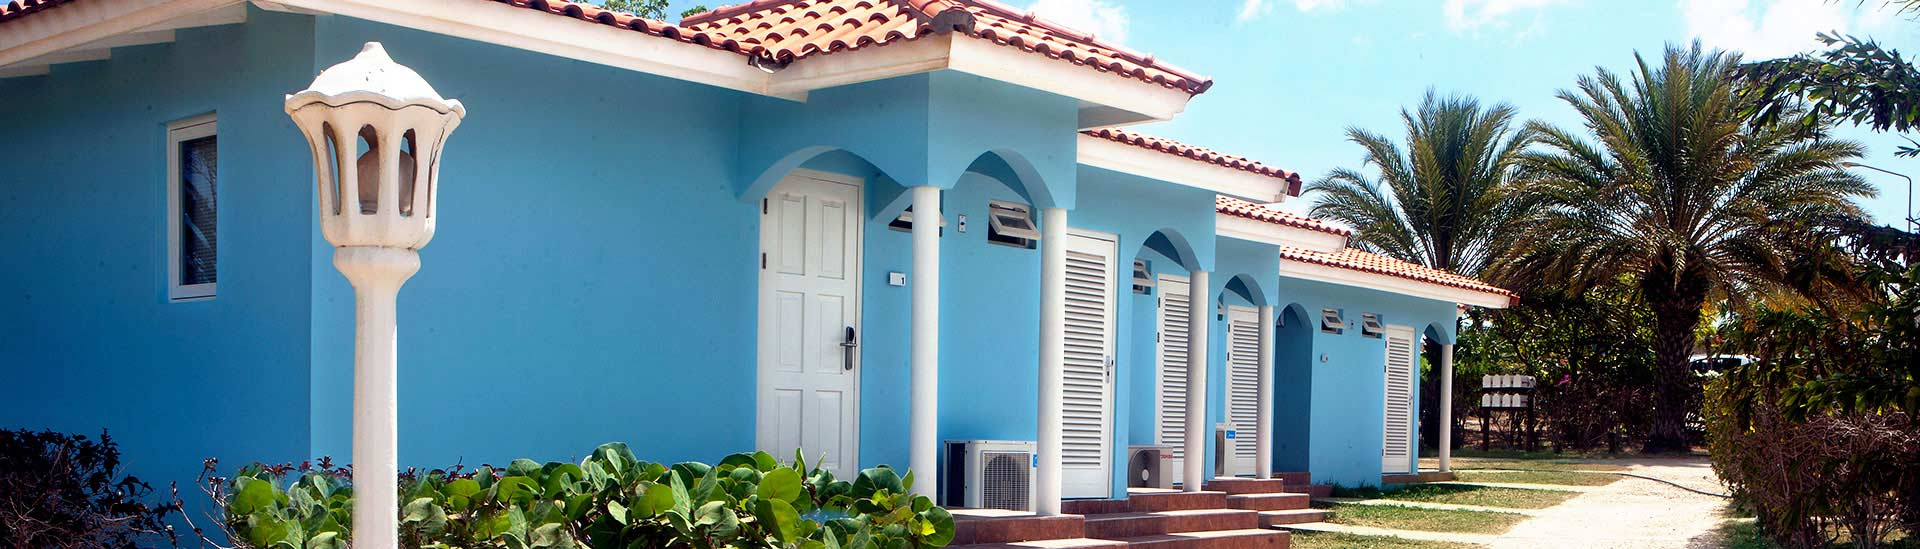 Car rent and comfortable accommodation close to the beach on Blue Bay Curacao.